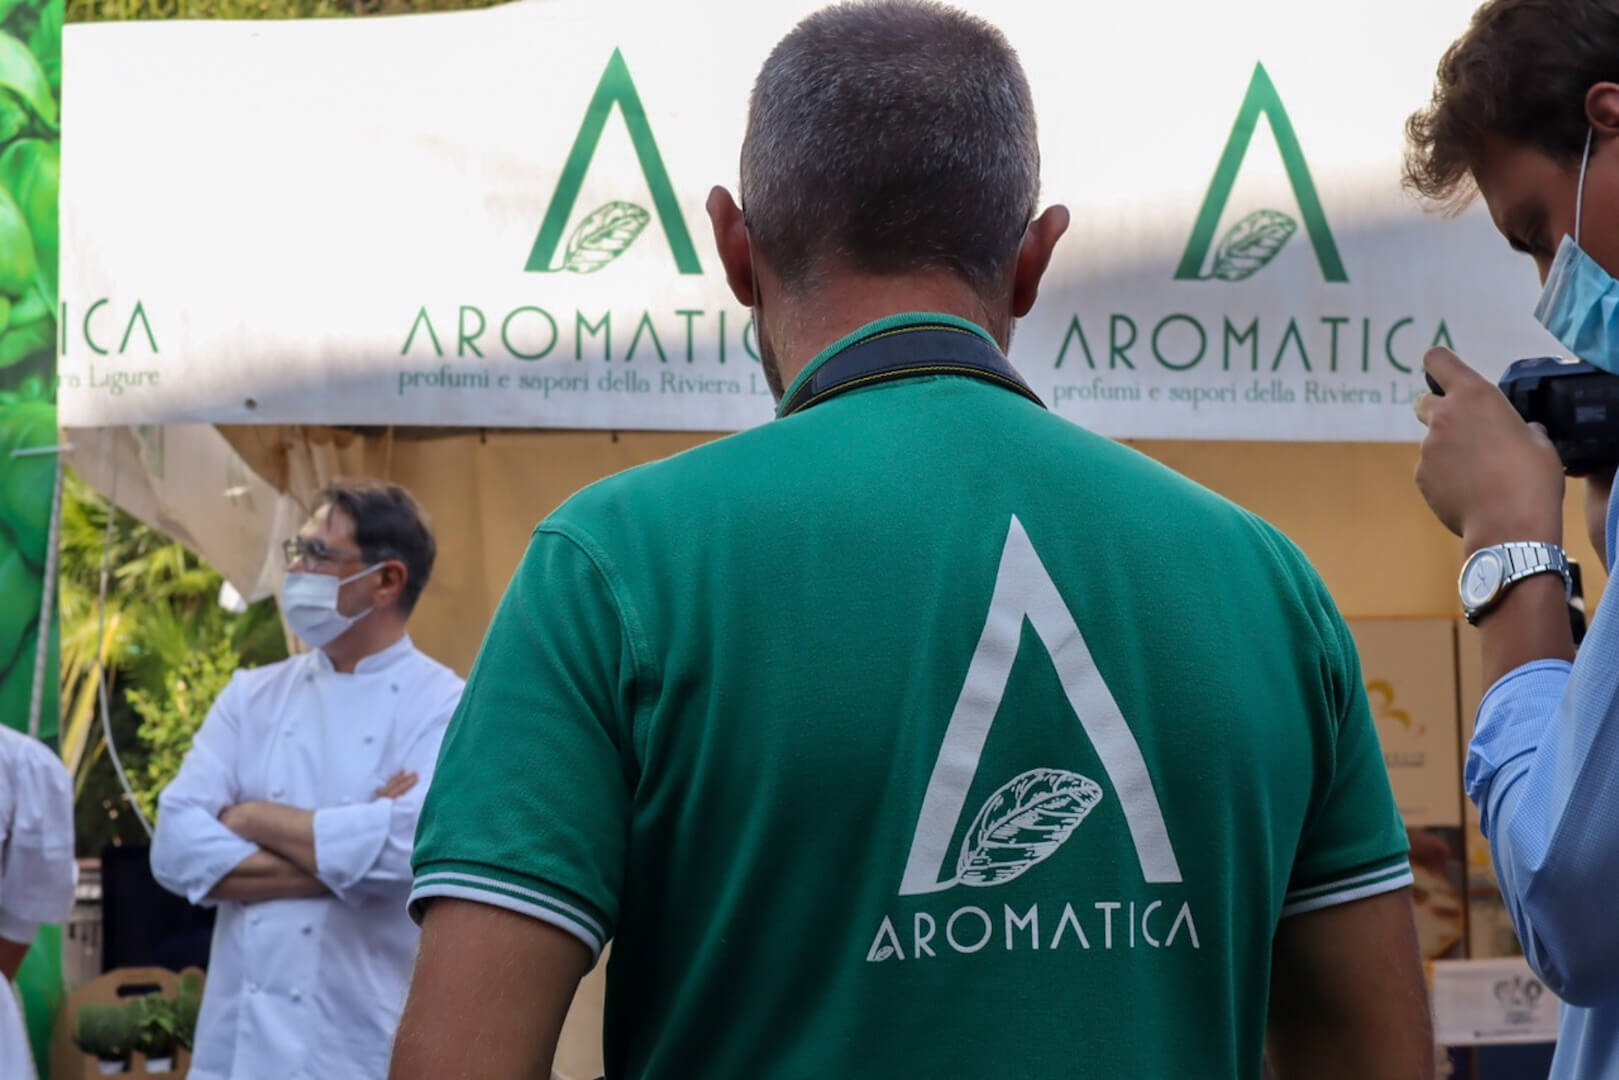 Aromatica 2020 in Diano Marina: among the stands of Ligurian perfumes